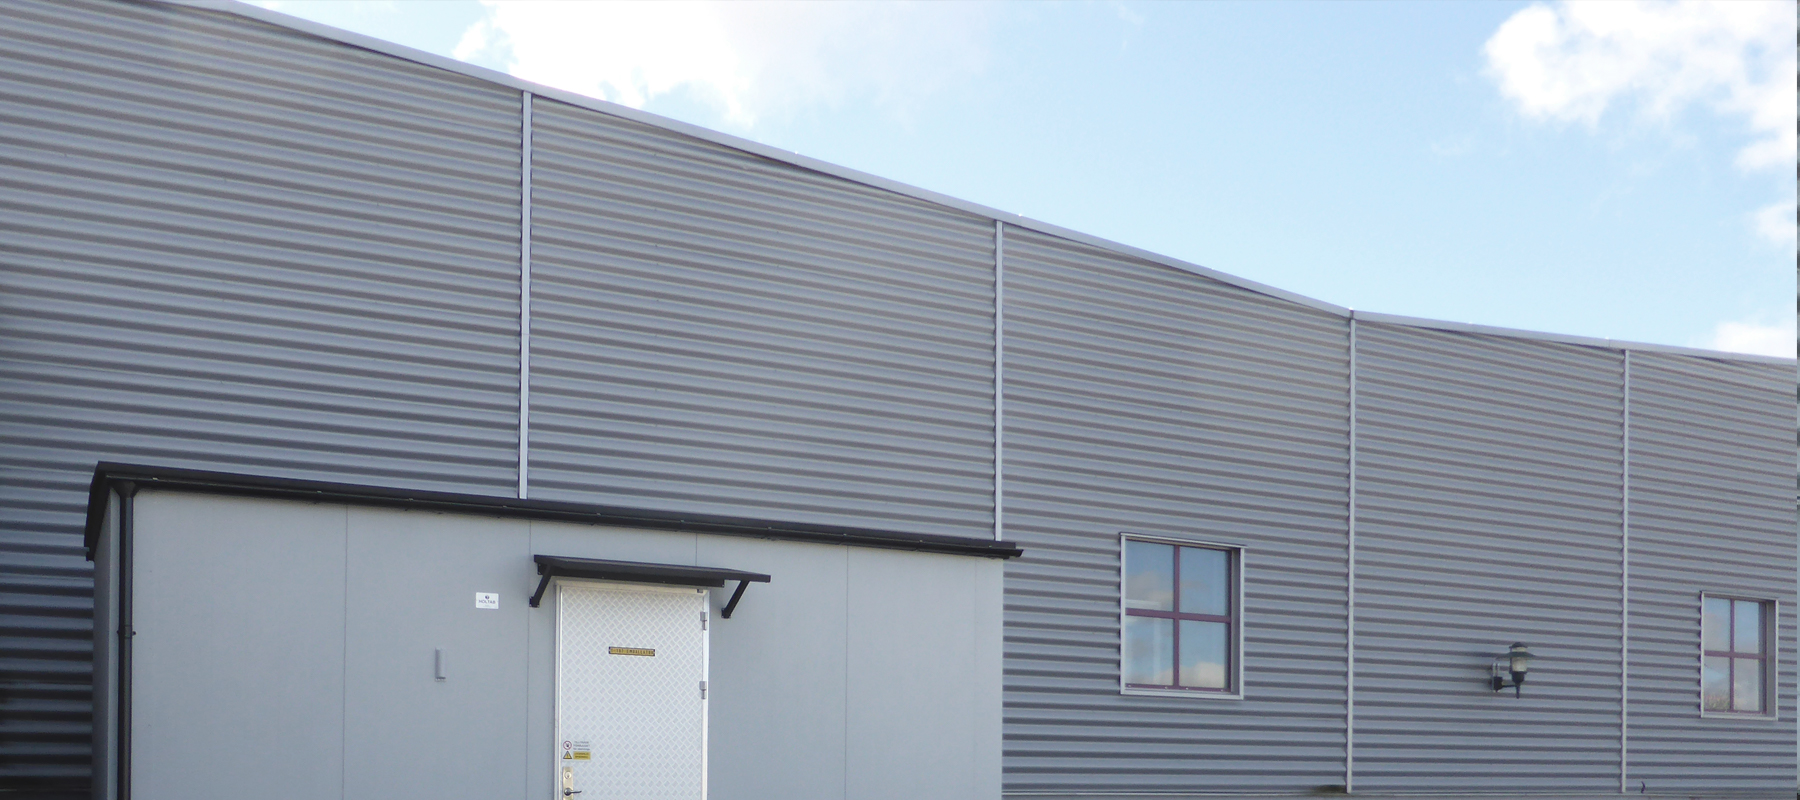 A creative solution for Electrical facility extension